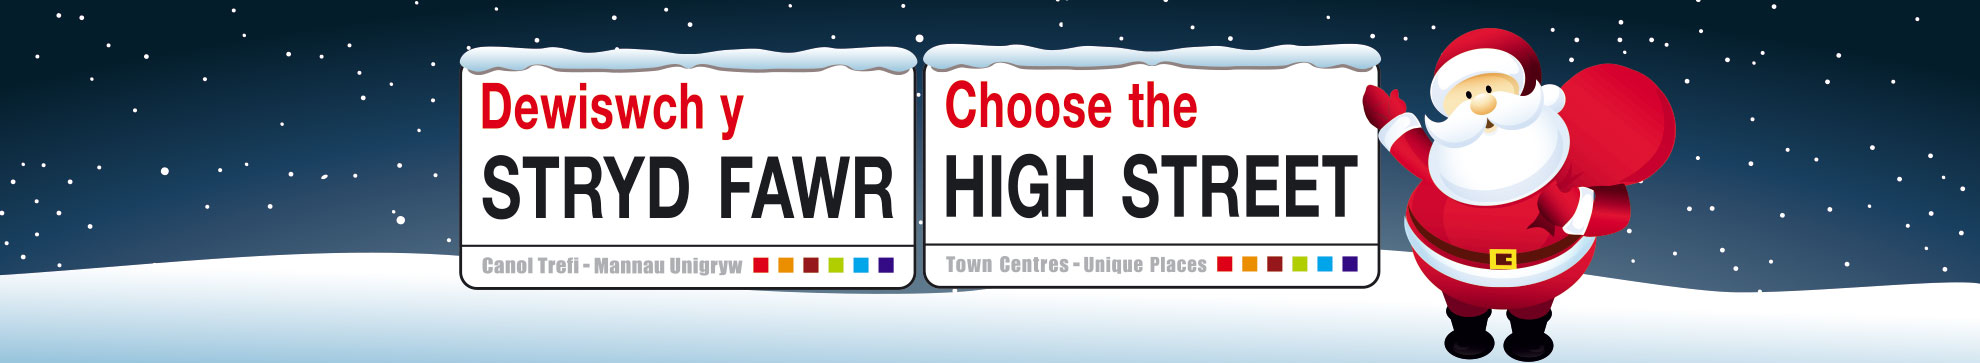 Choose the high street